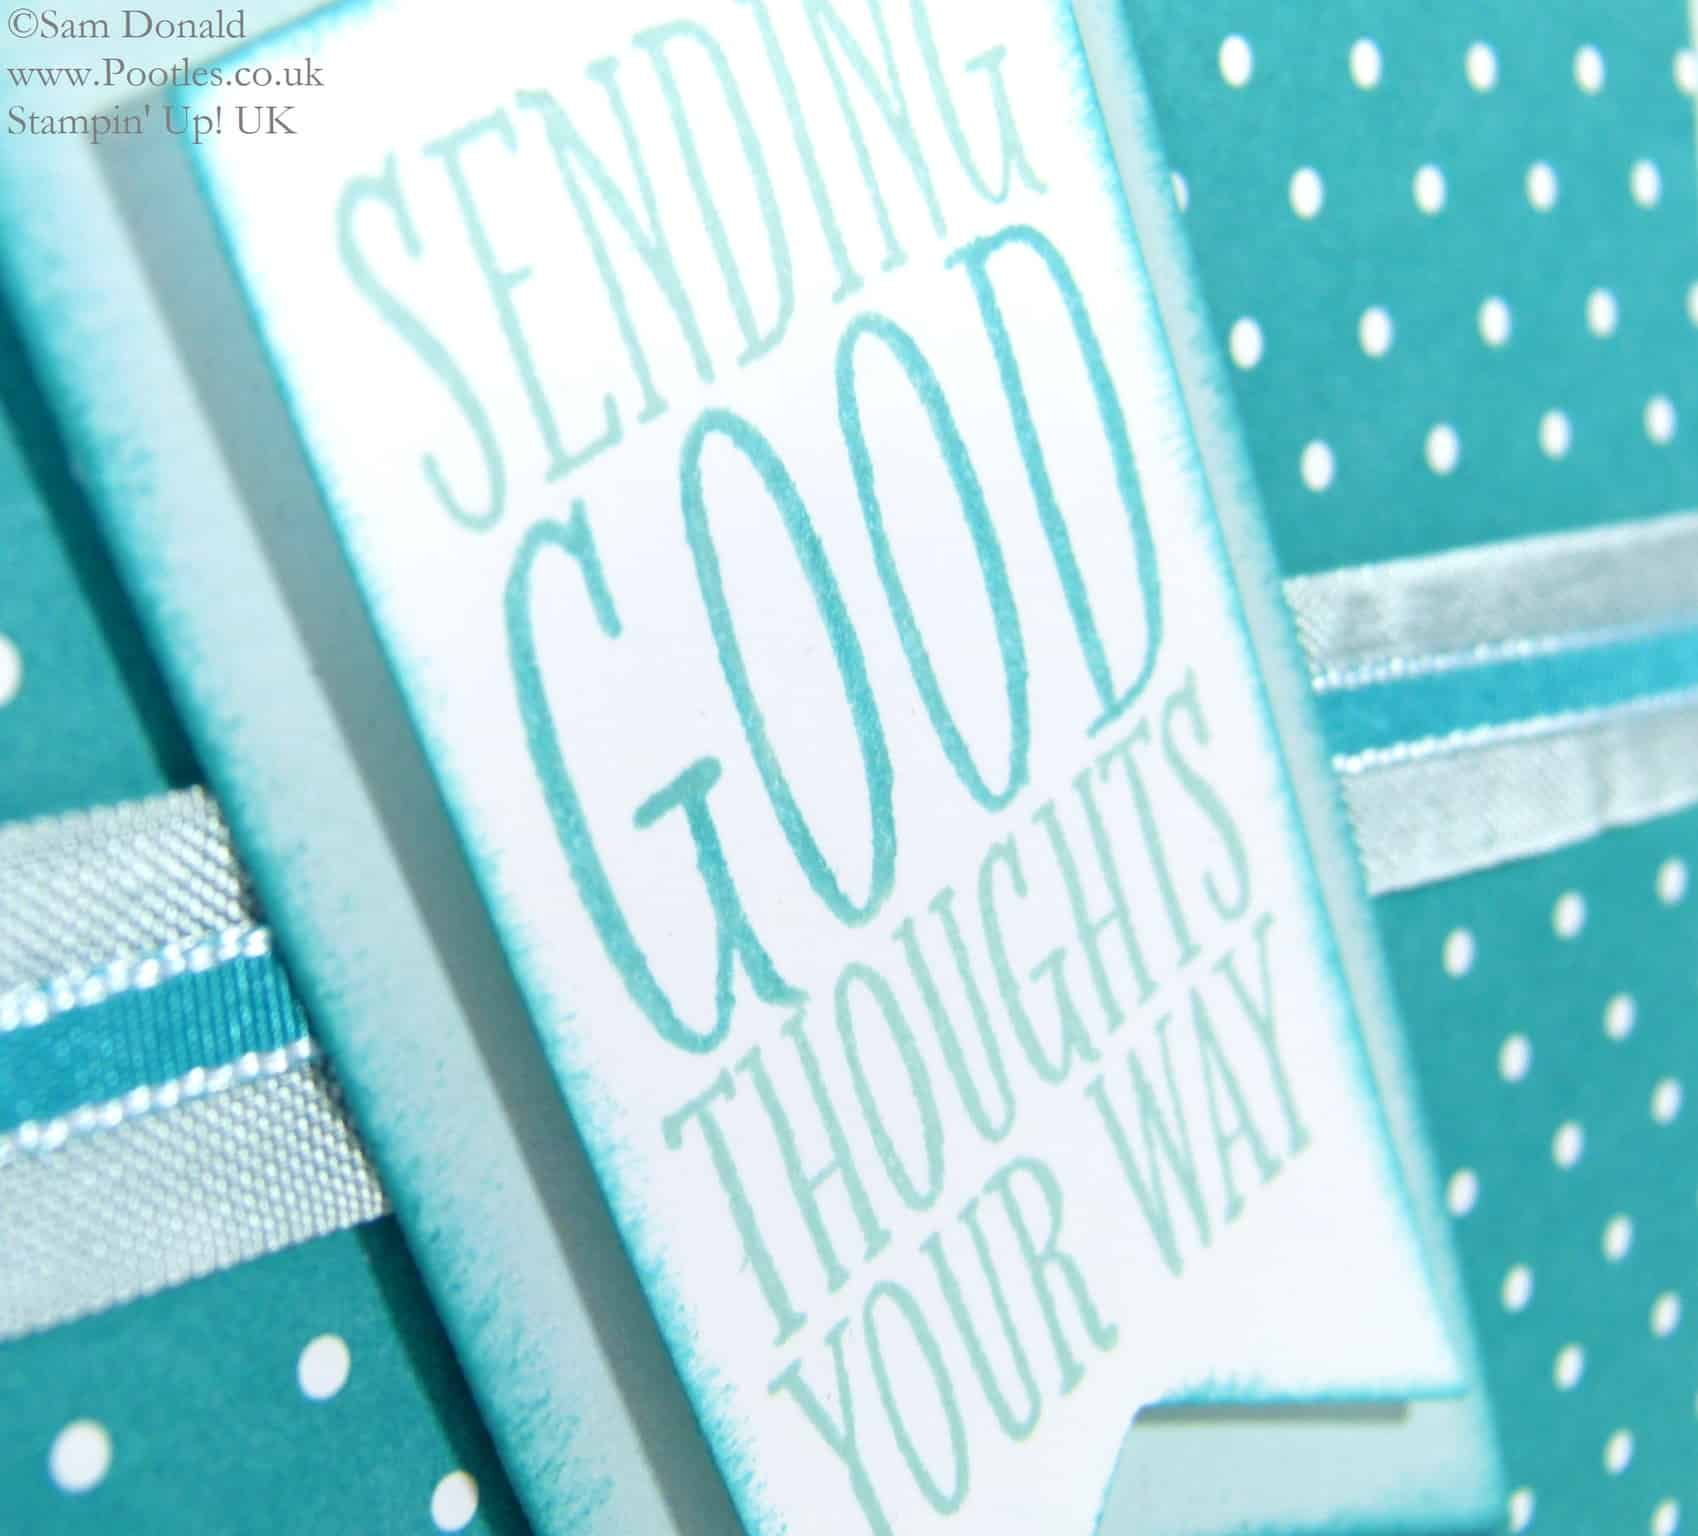 POOTLES Stampin Up UK is Sending Perfect Pennants Your Way! Marker Details (1)